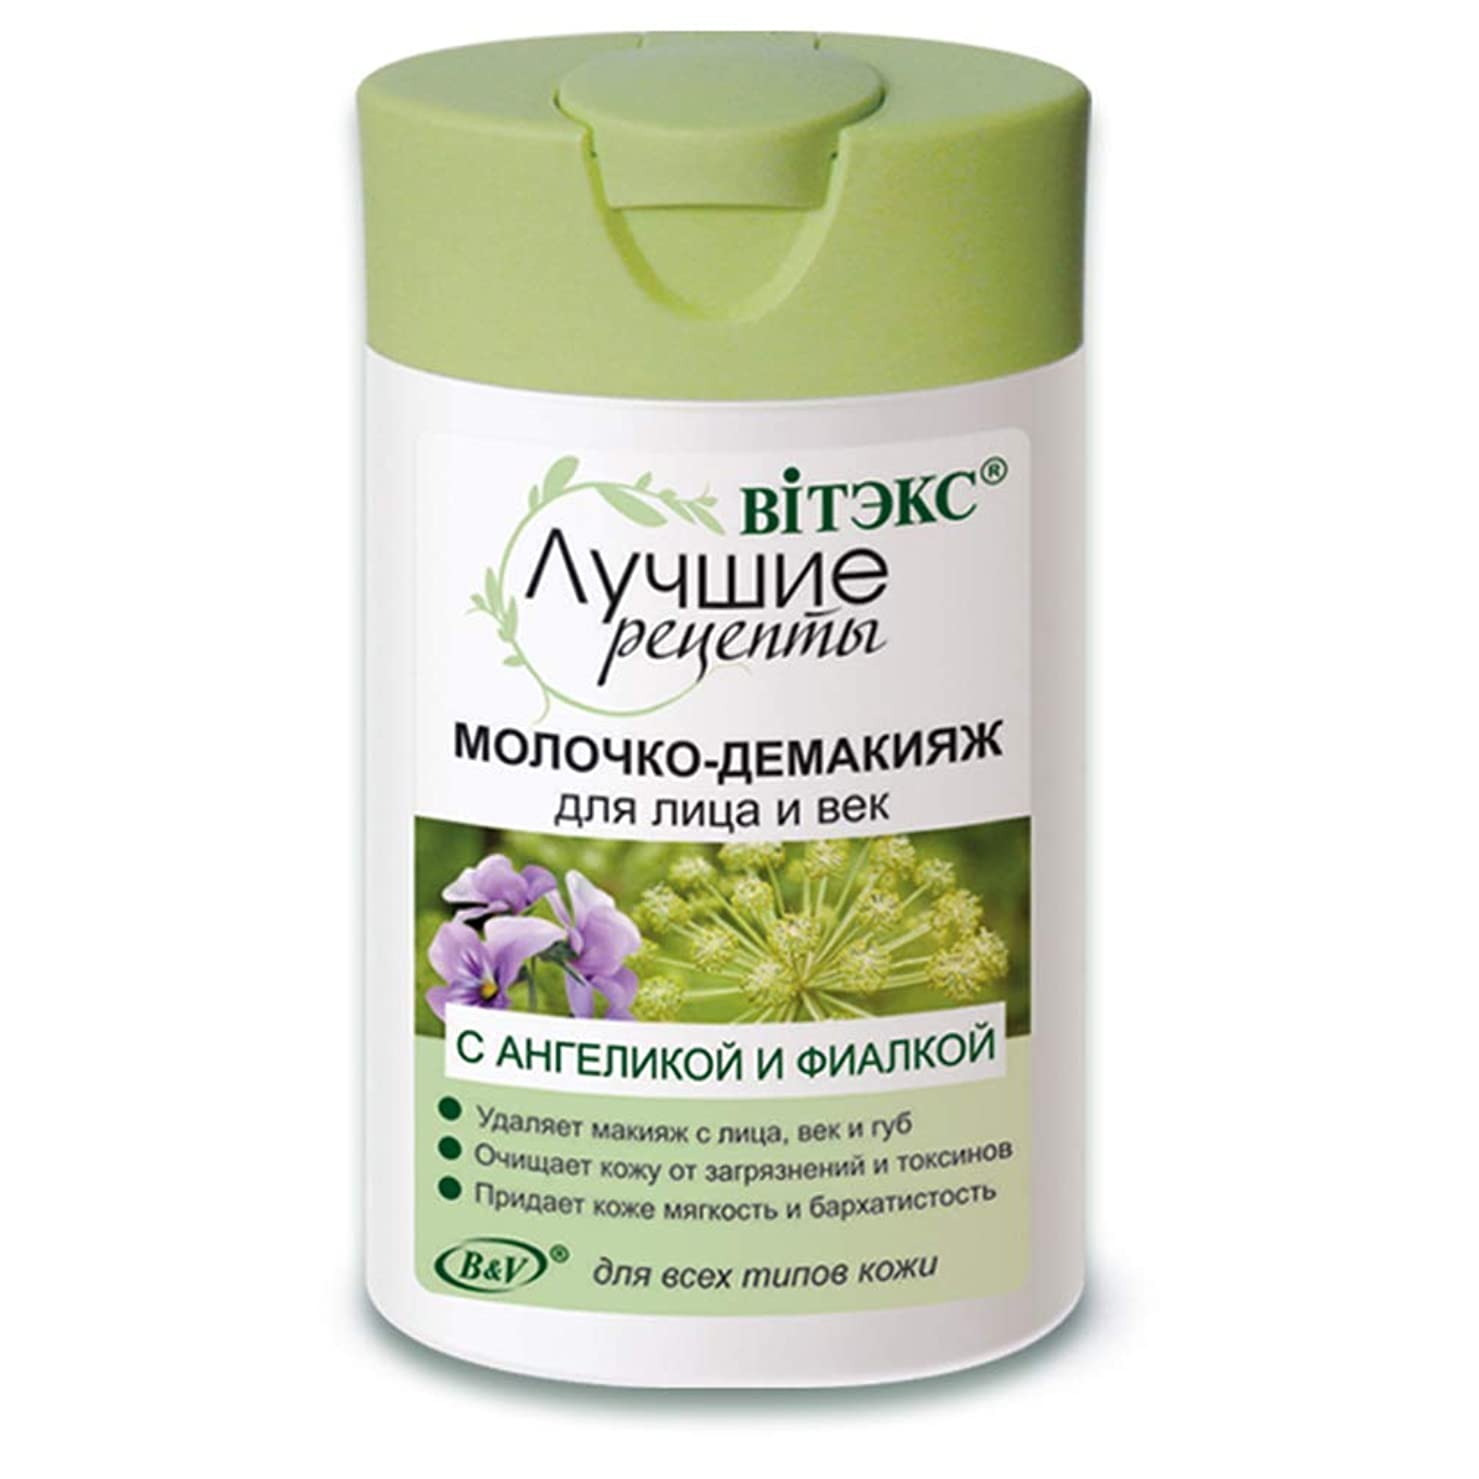 夏コイル発動機Bielita & Vitex Best Recipes Line | Milk Makeup Remover, 145 ml | Moringa Extract, Angelica, Rye Bread Extract, Vitamins